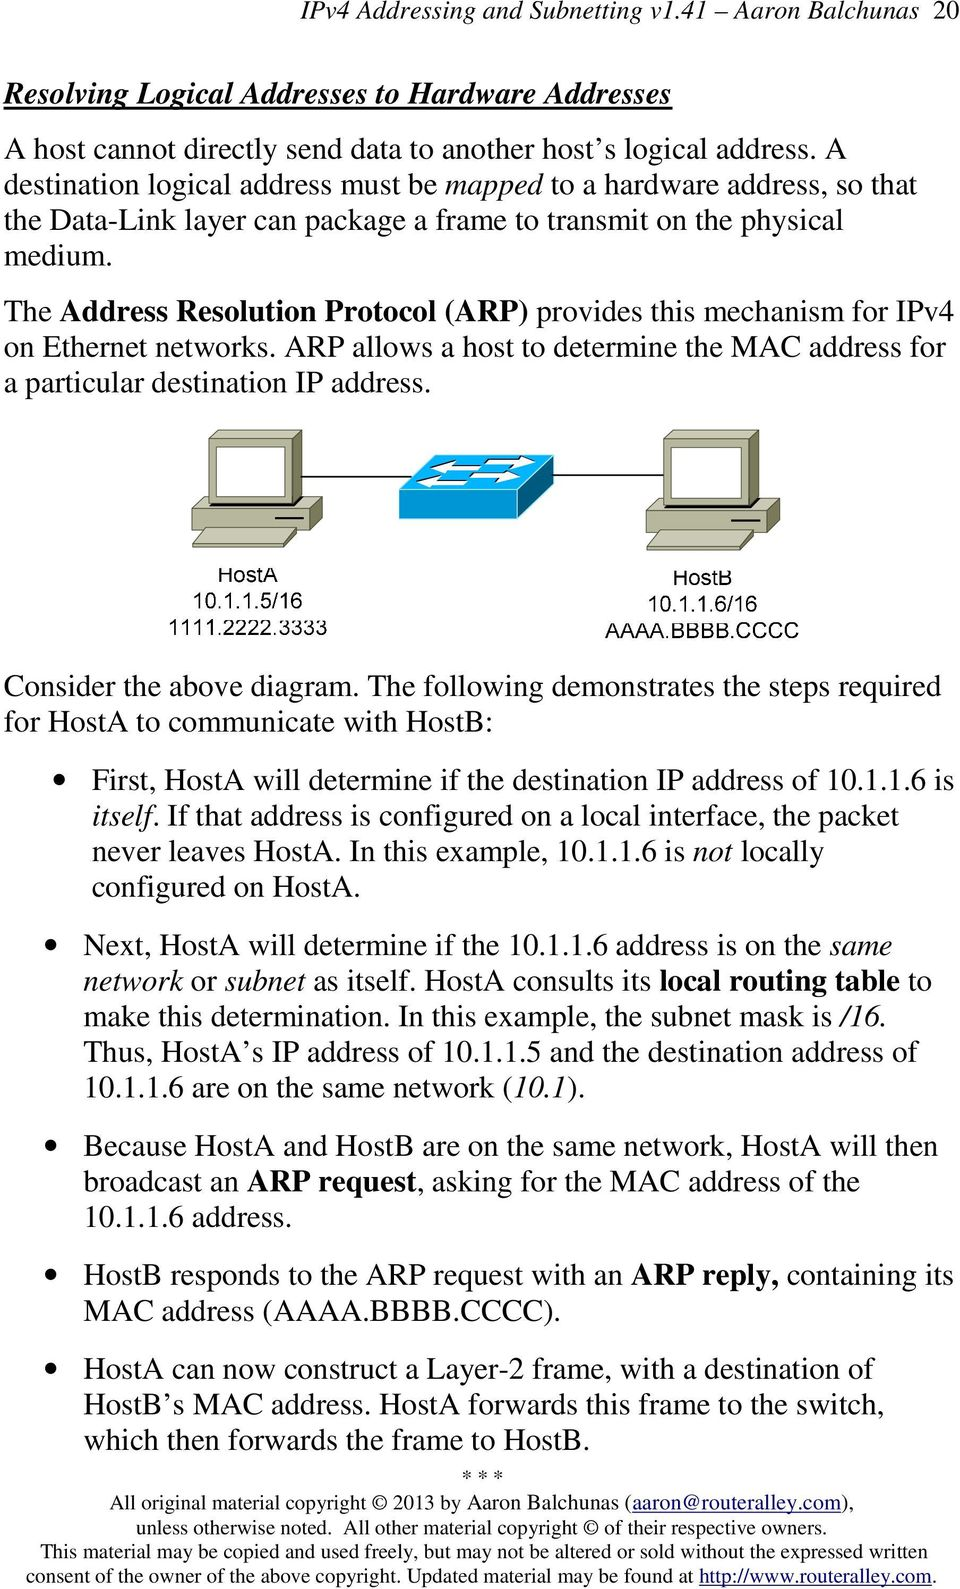 The Address Resolution Protocol (ARP) provides this mechanism for IPv4 on Ethernet networks. ARP allows a host to determine the MAC address for a particular destination IP address.